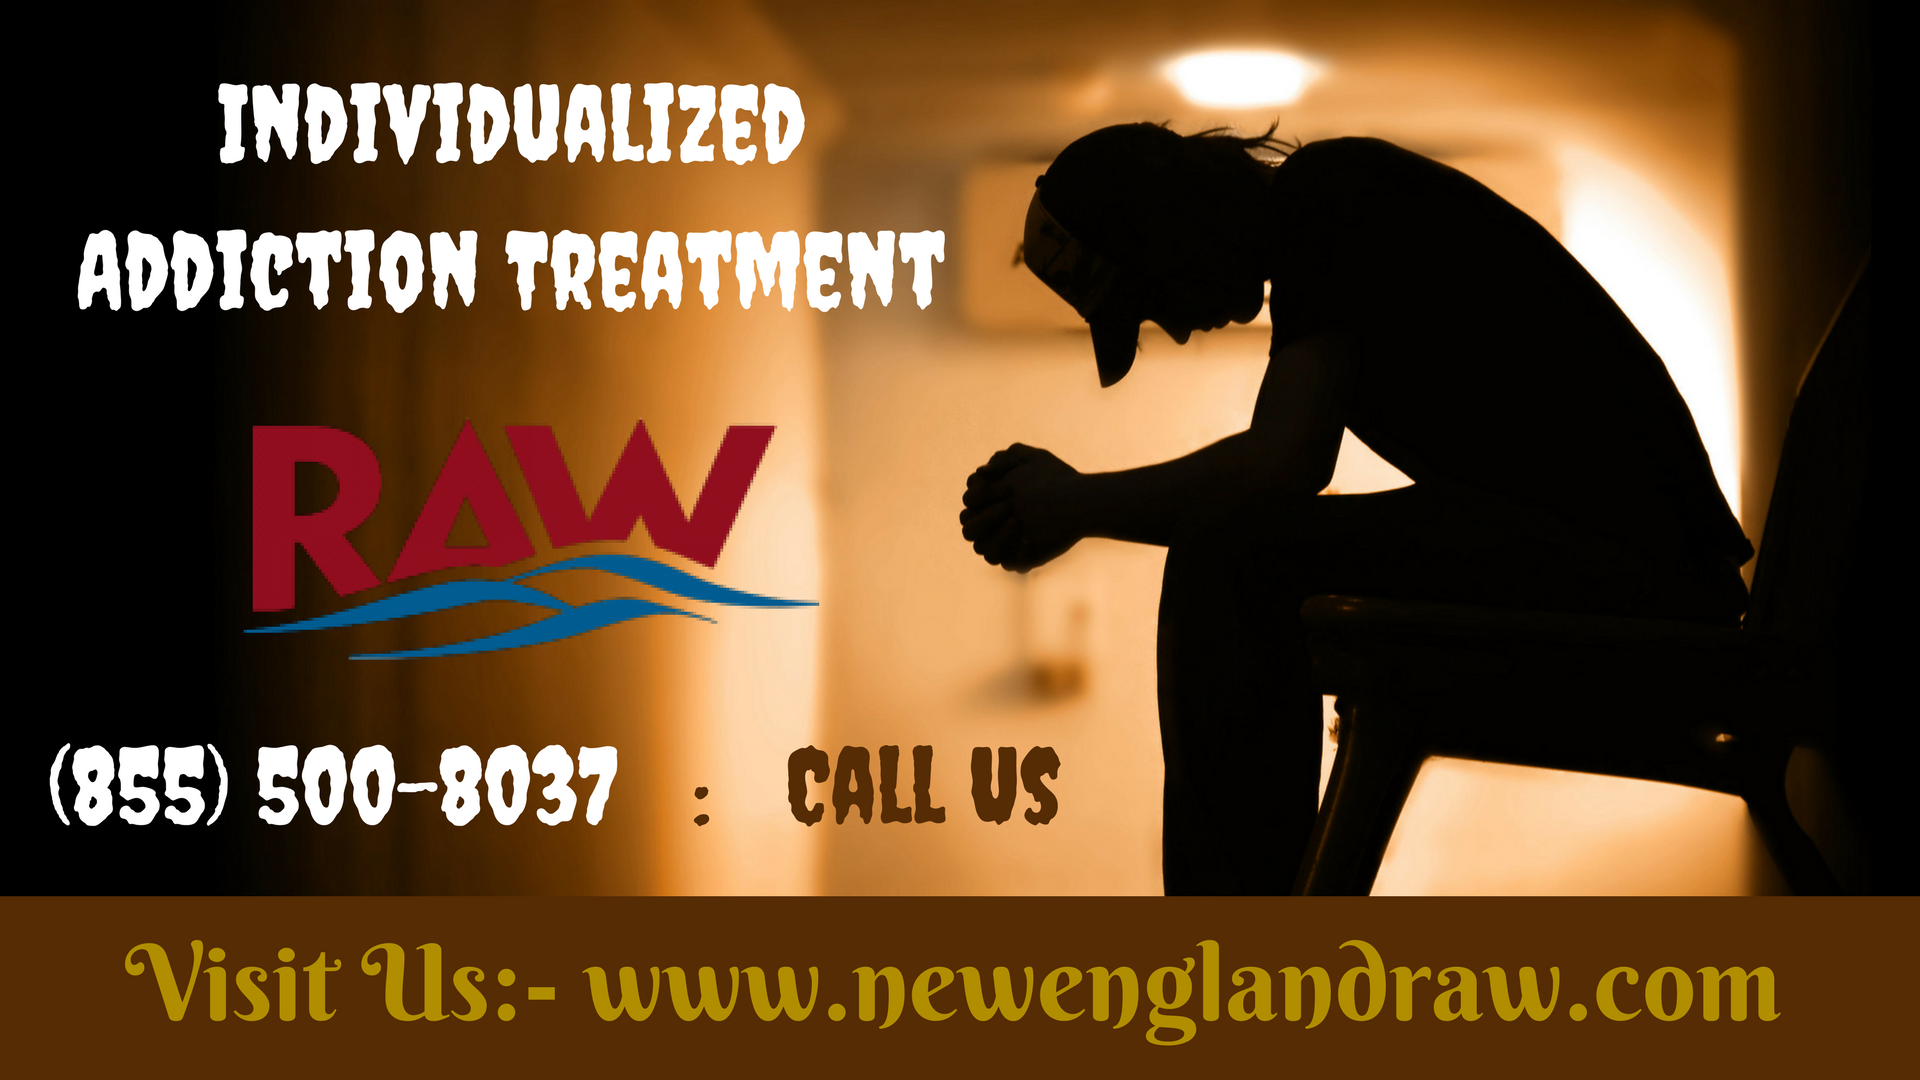 Comprehensive Care For Addiction Treatment in New Hampshire